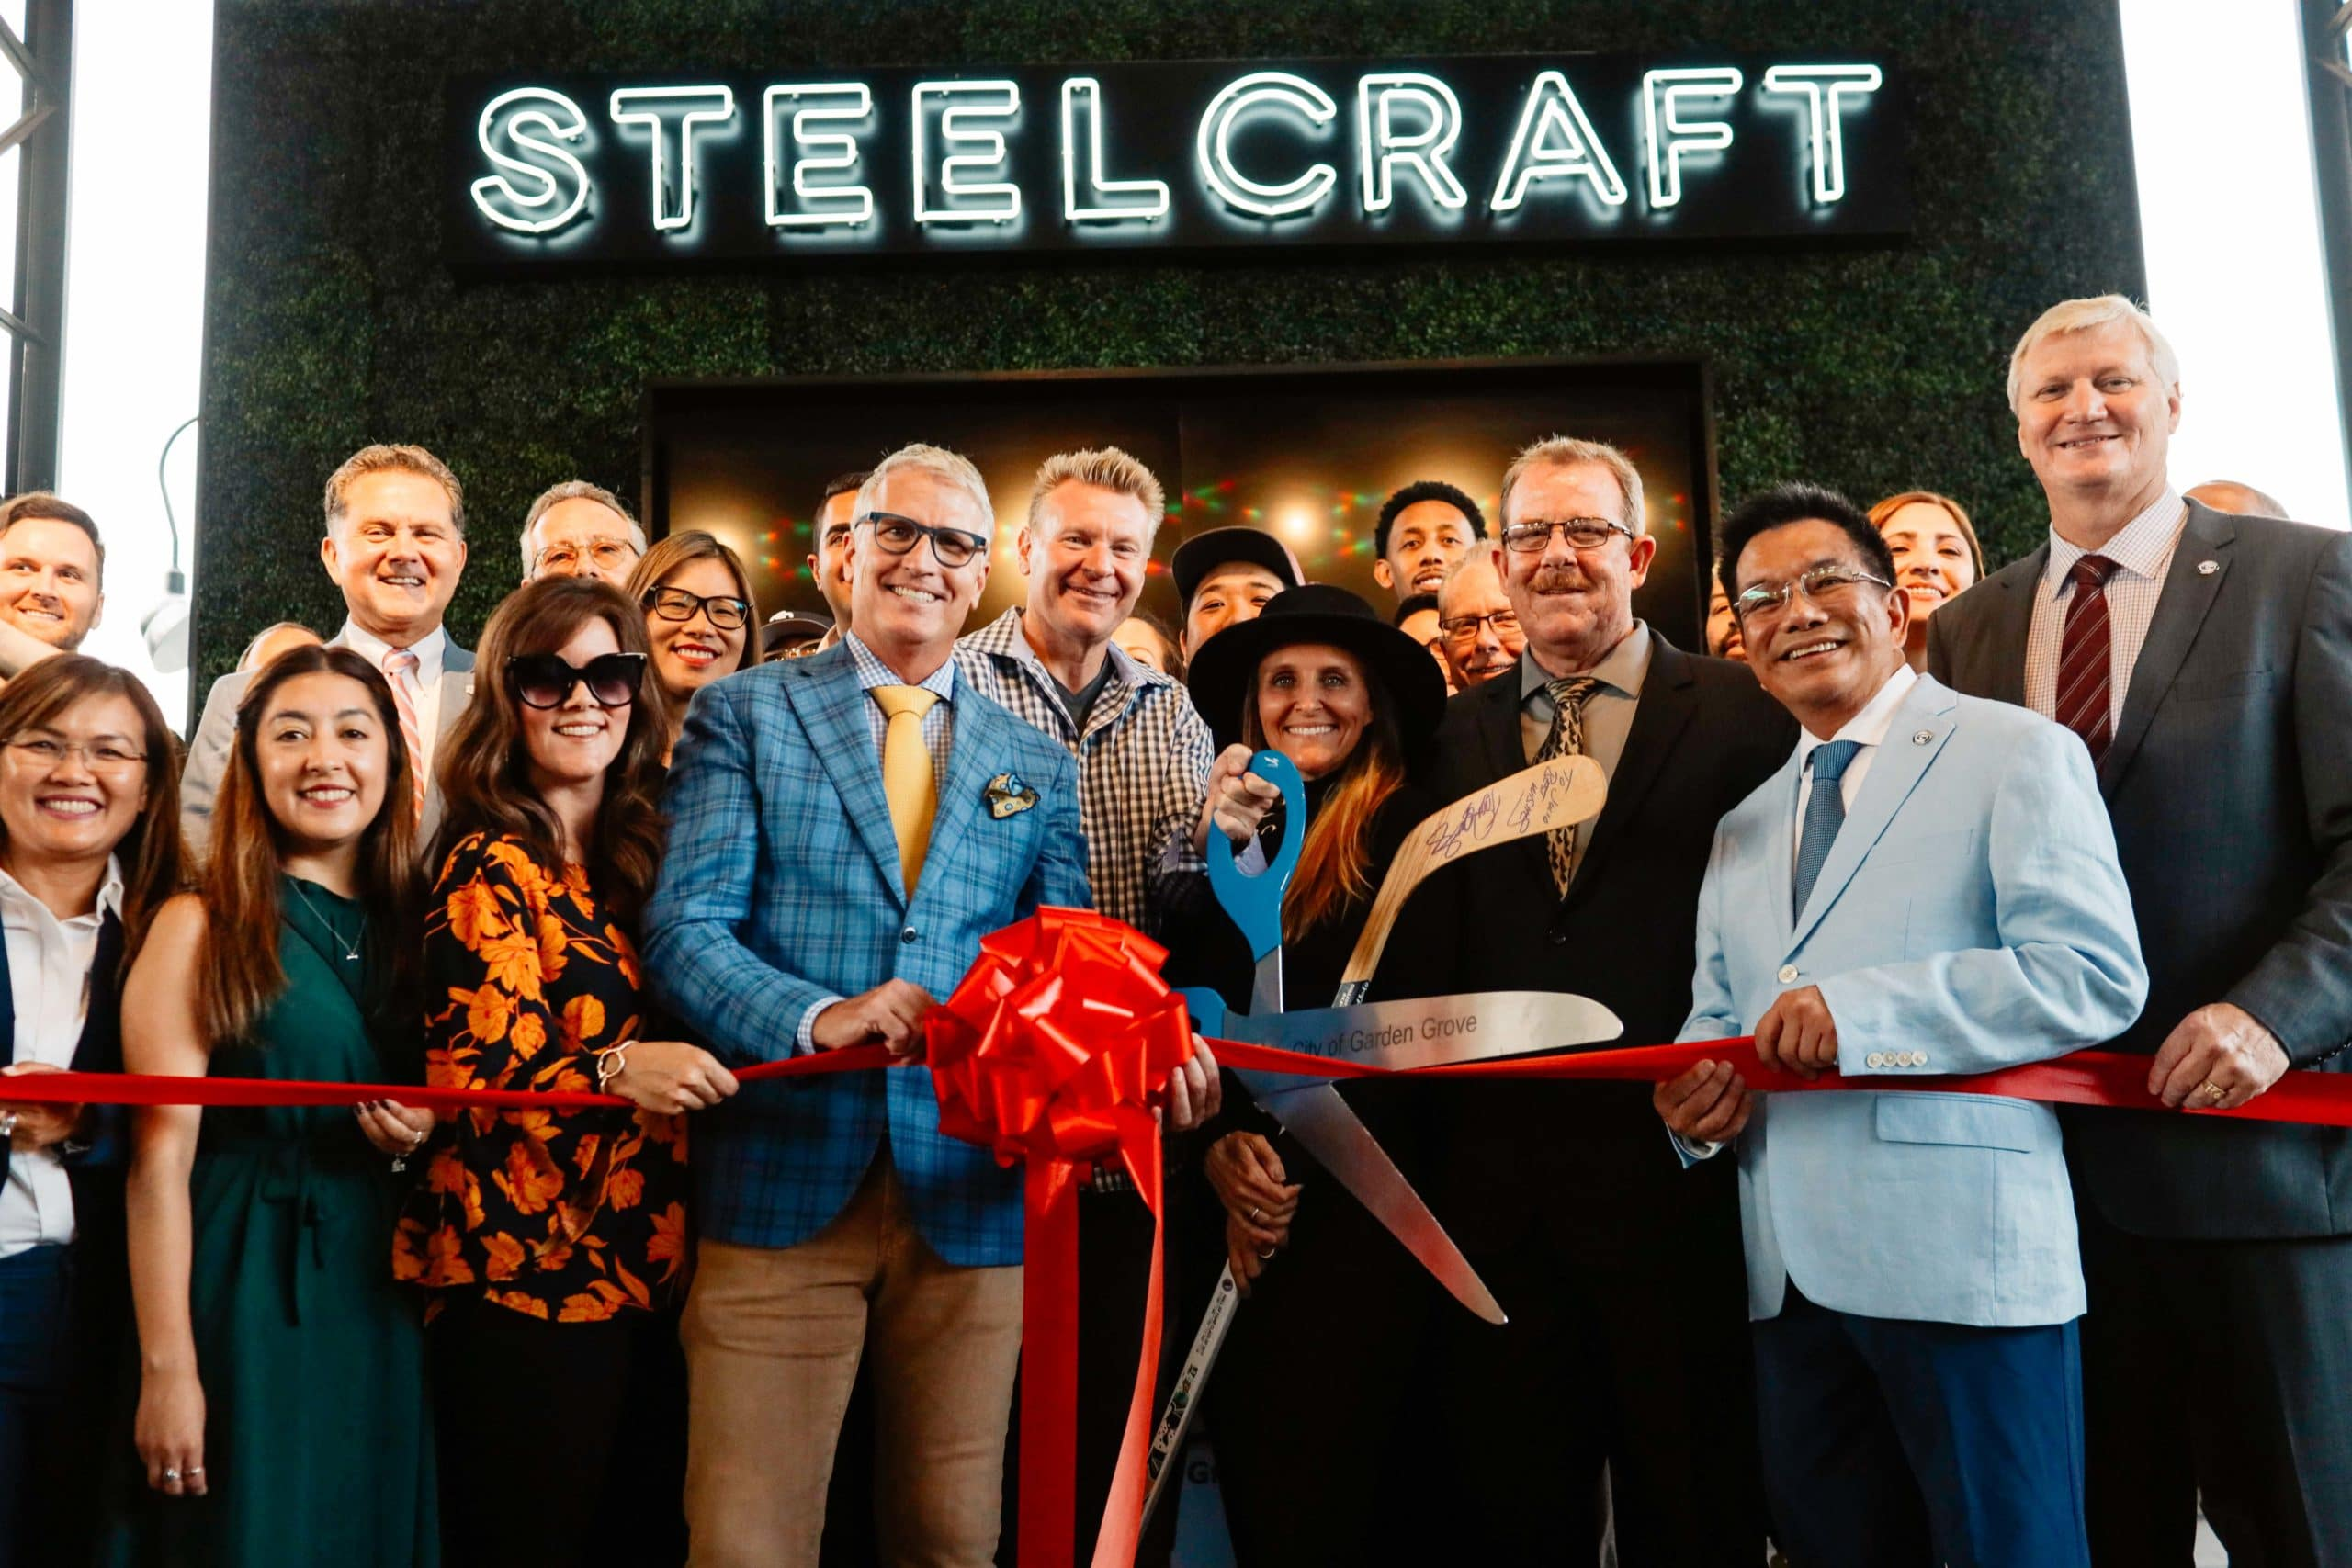 Steelcraft Garden Grove Celebrates Grand Opening Wilson Creek Winery Joins Vendor Lineup Steelcraft